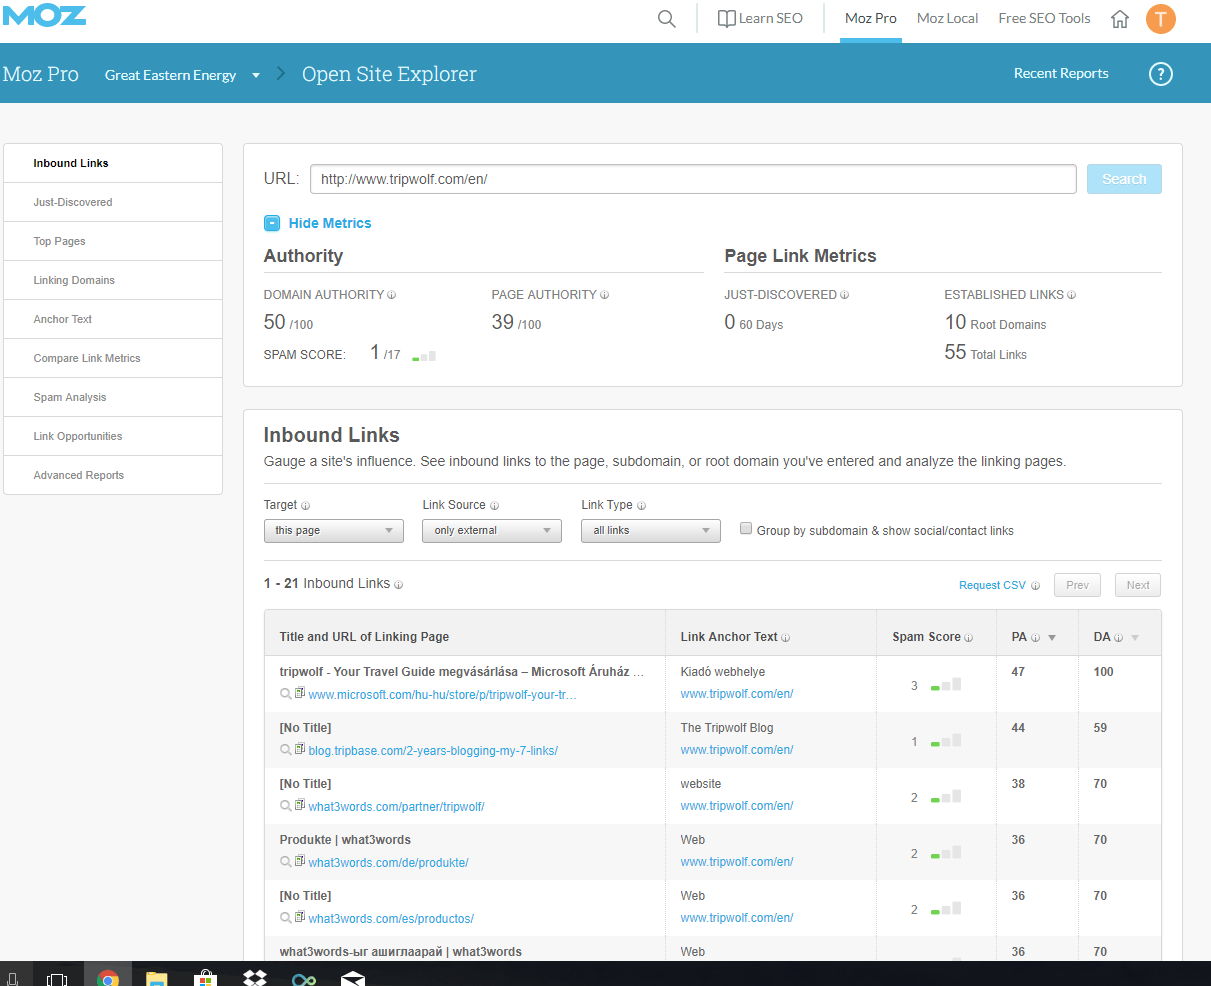 Moz Pro Interface